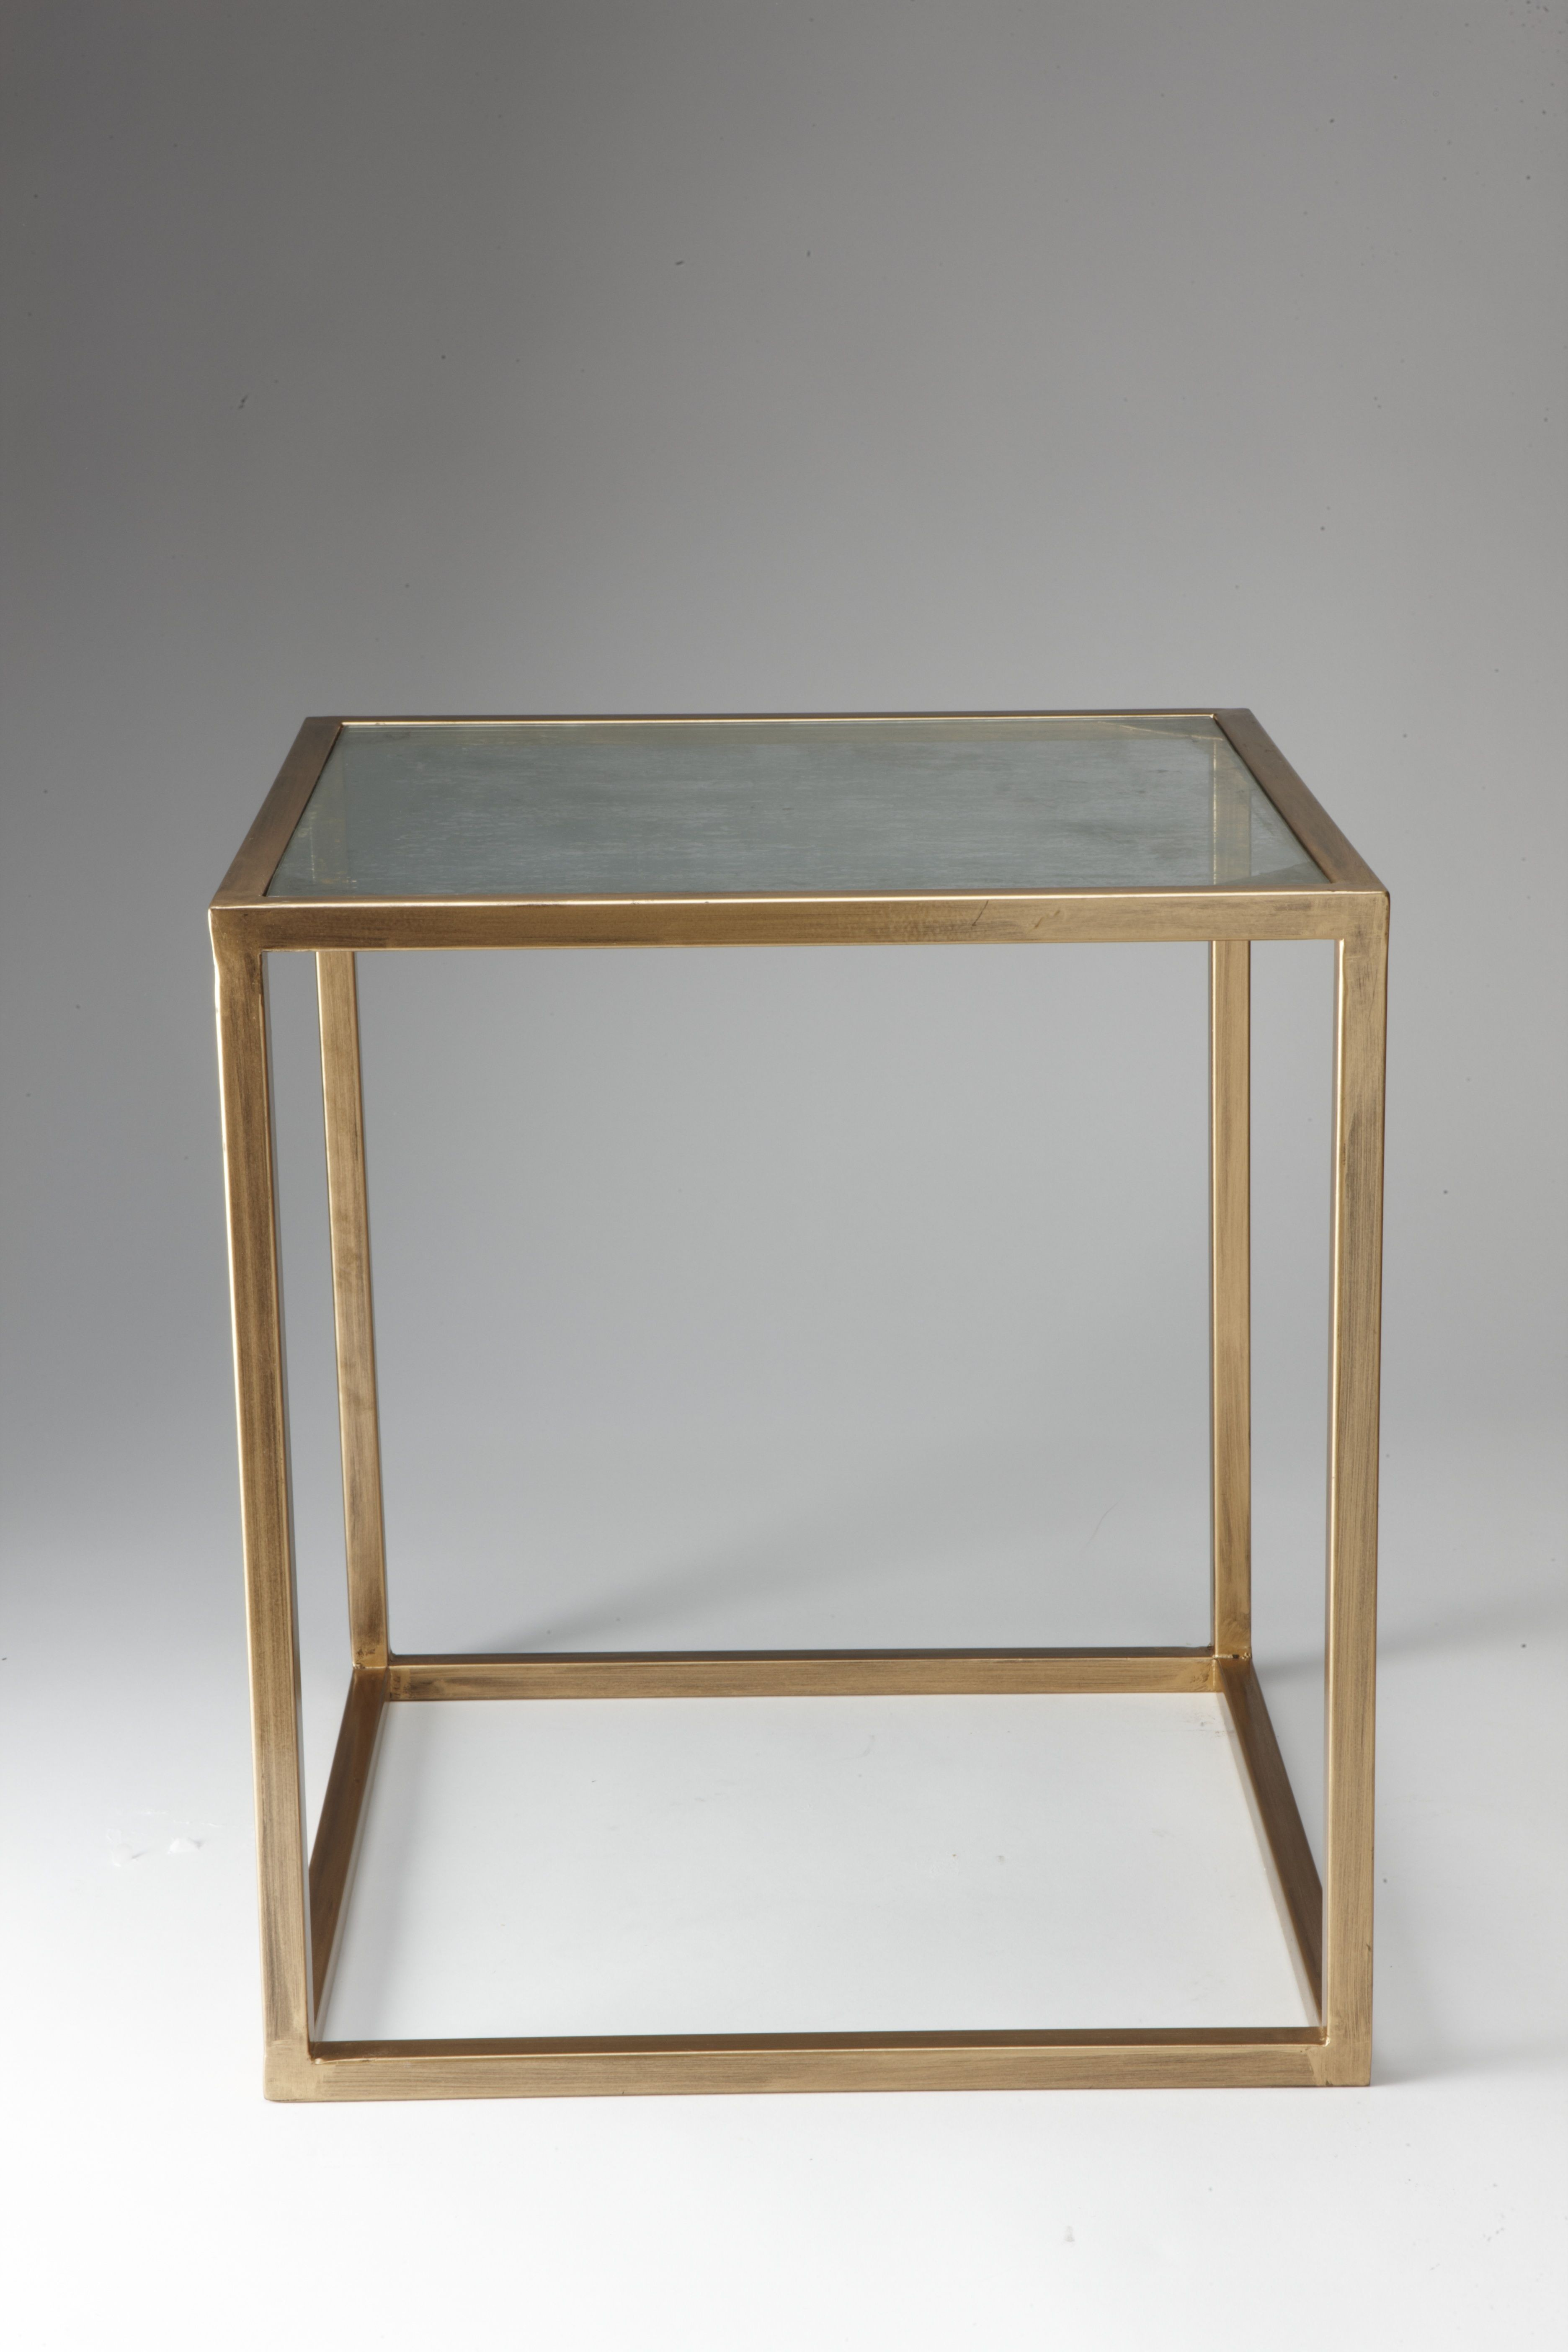 home design mirrored nightstand target best threshold awesome nate berkus accent table gold and antiqued glass with drawer full size farm style plans circular top replacement